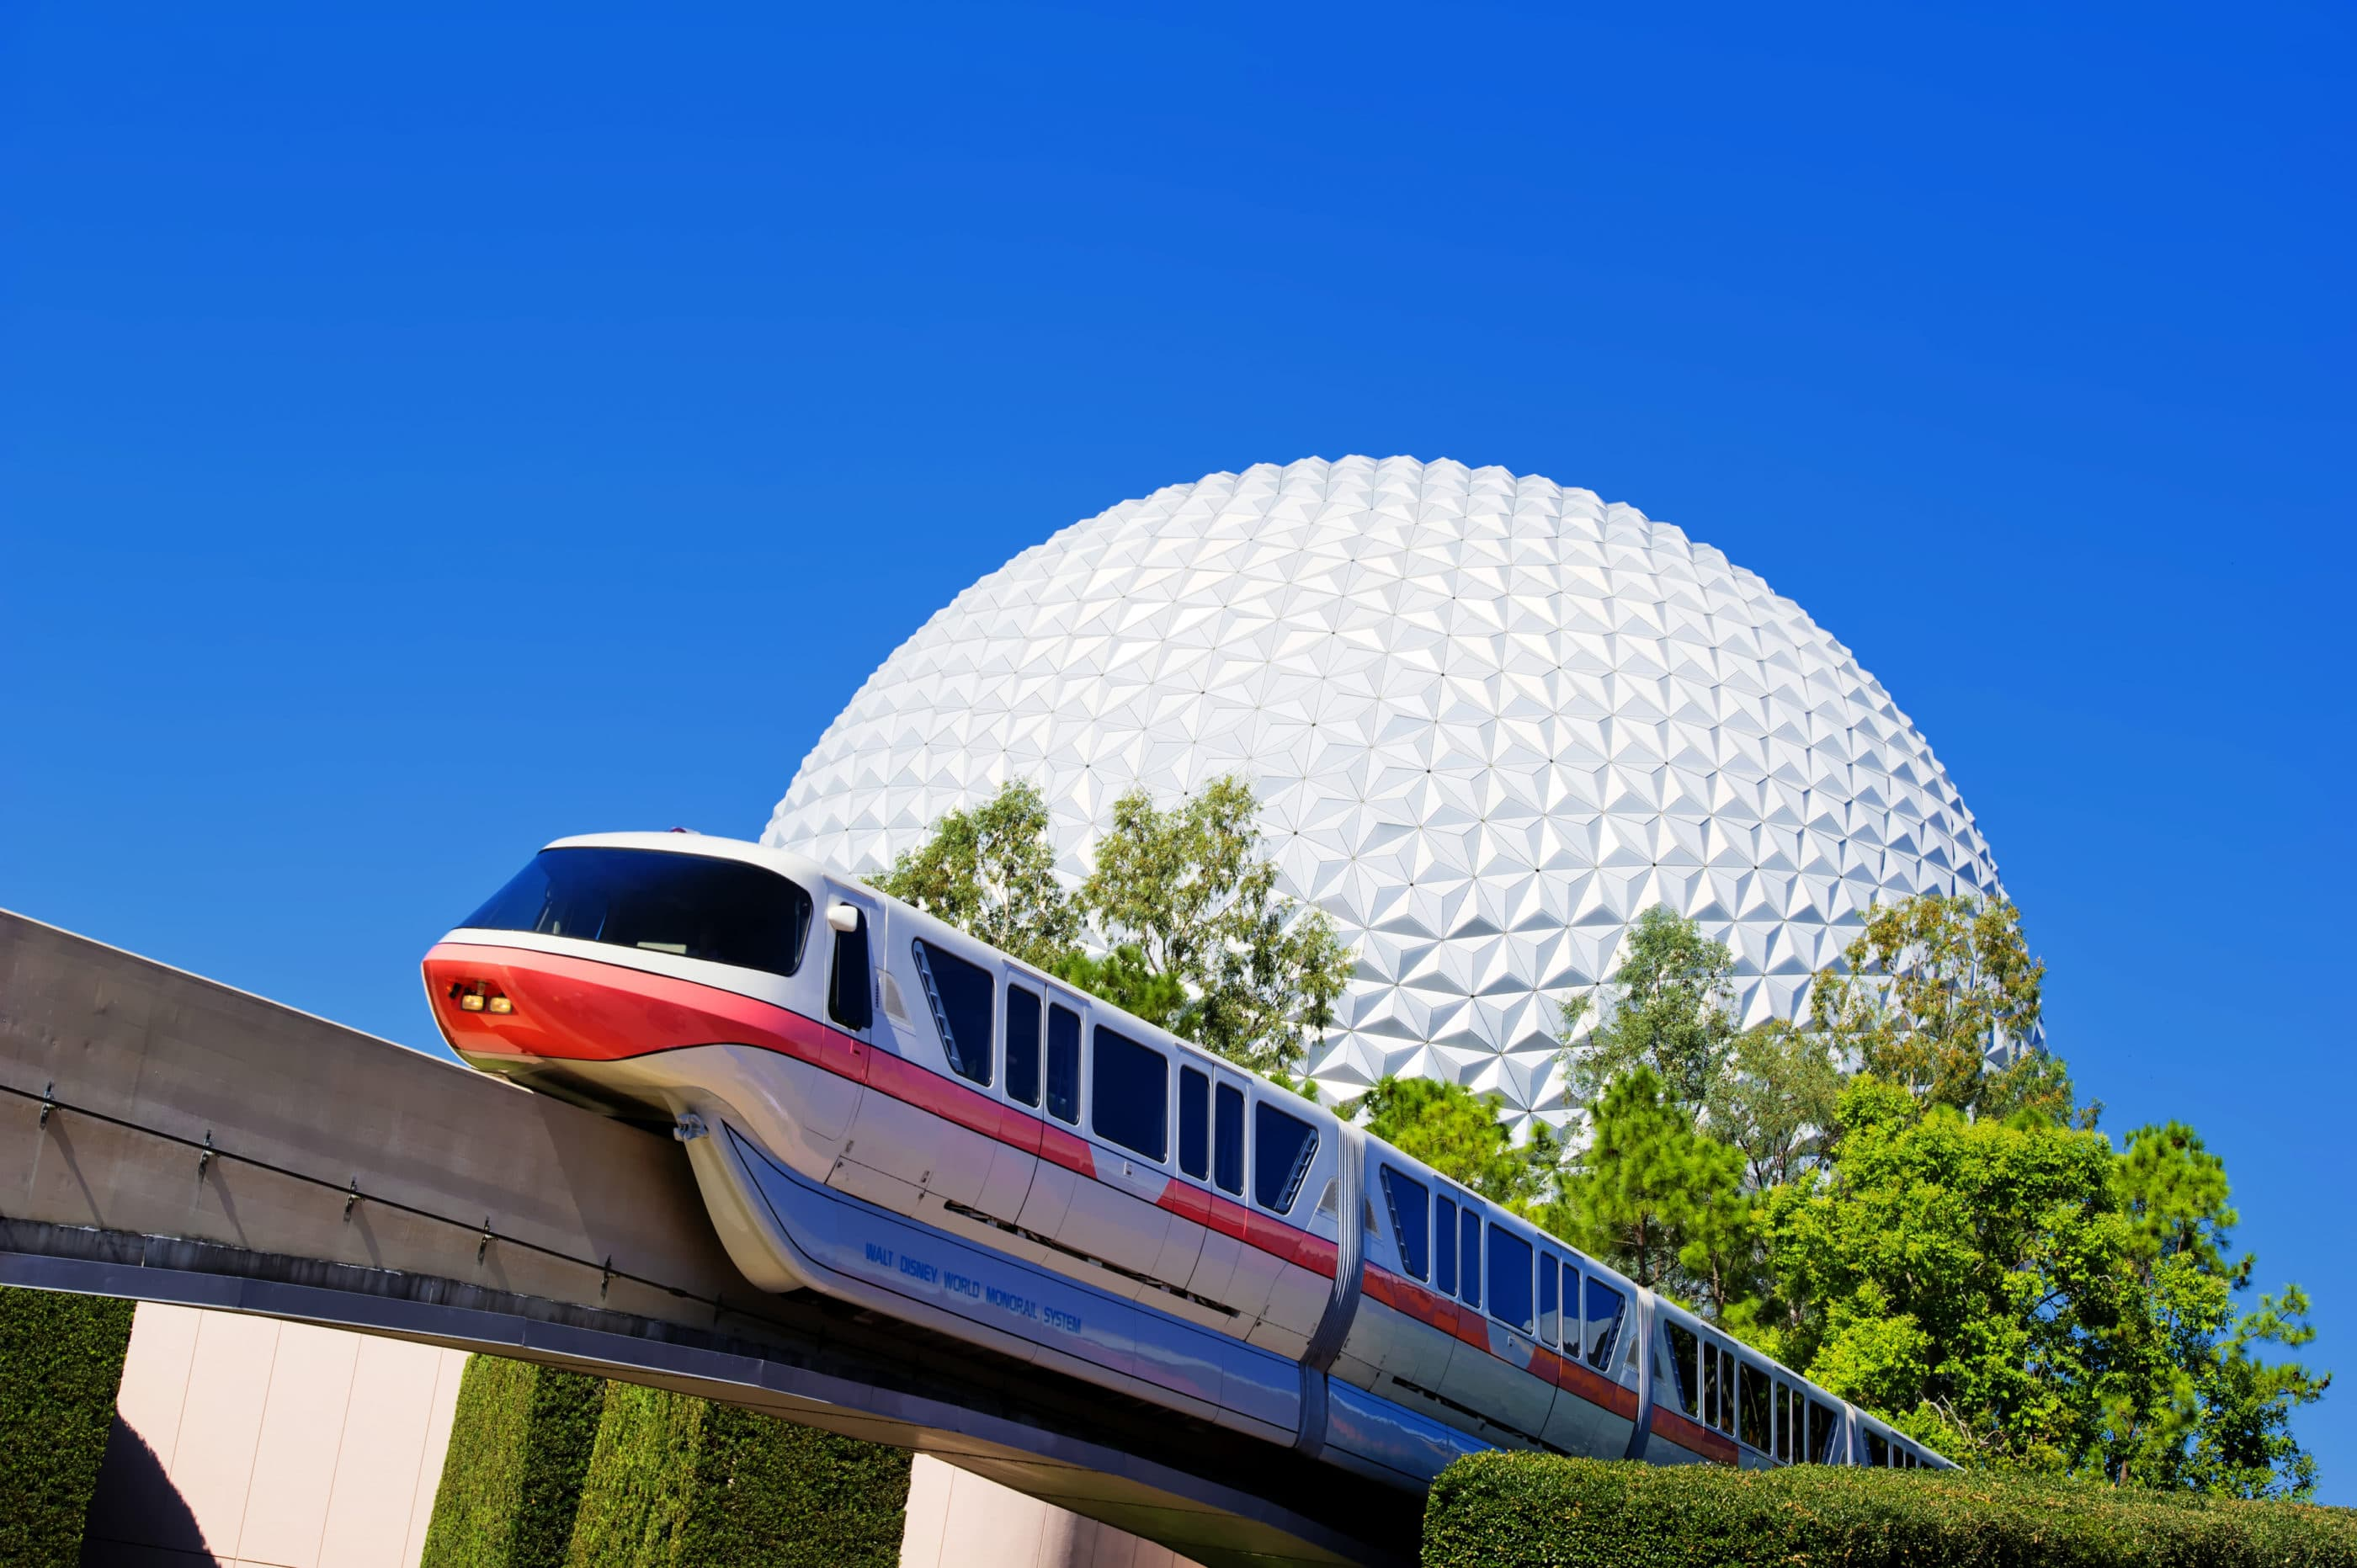 A monorail train passes by Spaceship Earth, the visual and thematic centerpiece of Epcot at Walt Disney World Resort.